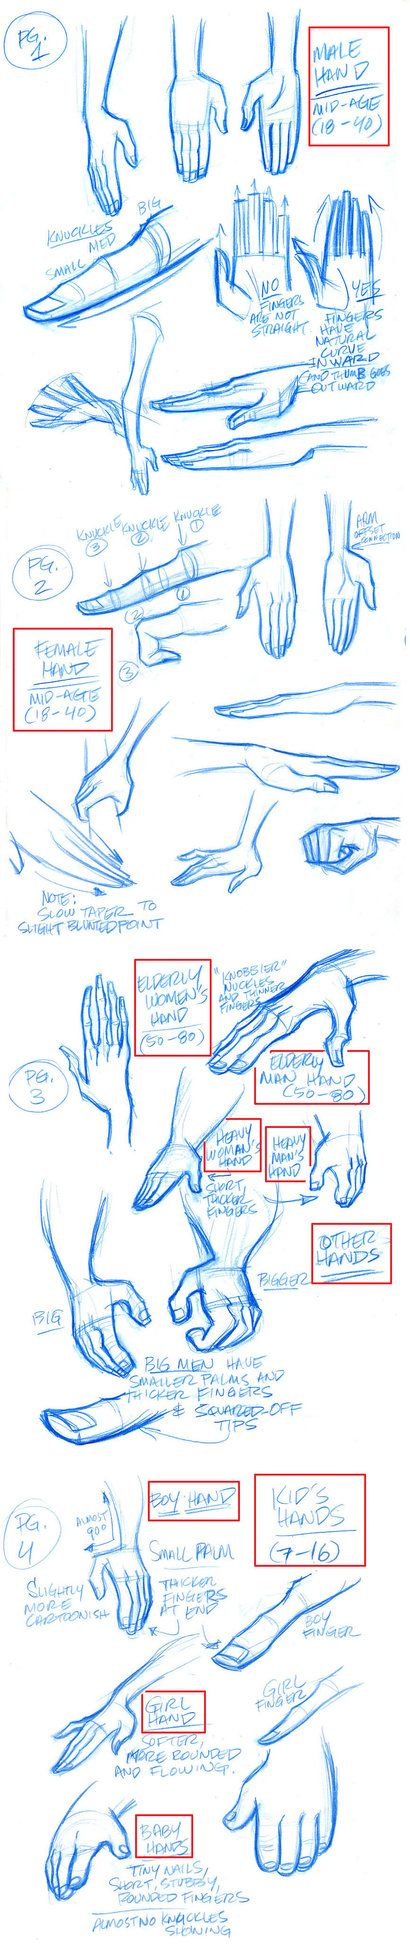 Stylized Hands model sheets by tombancroft on deviantART